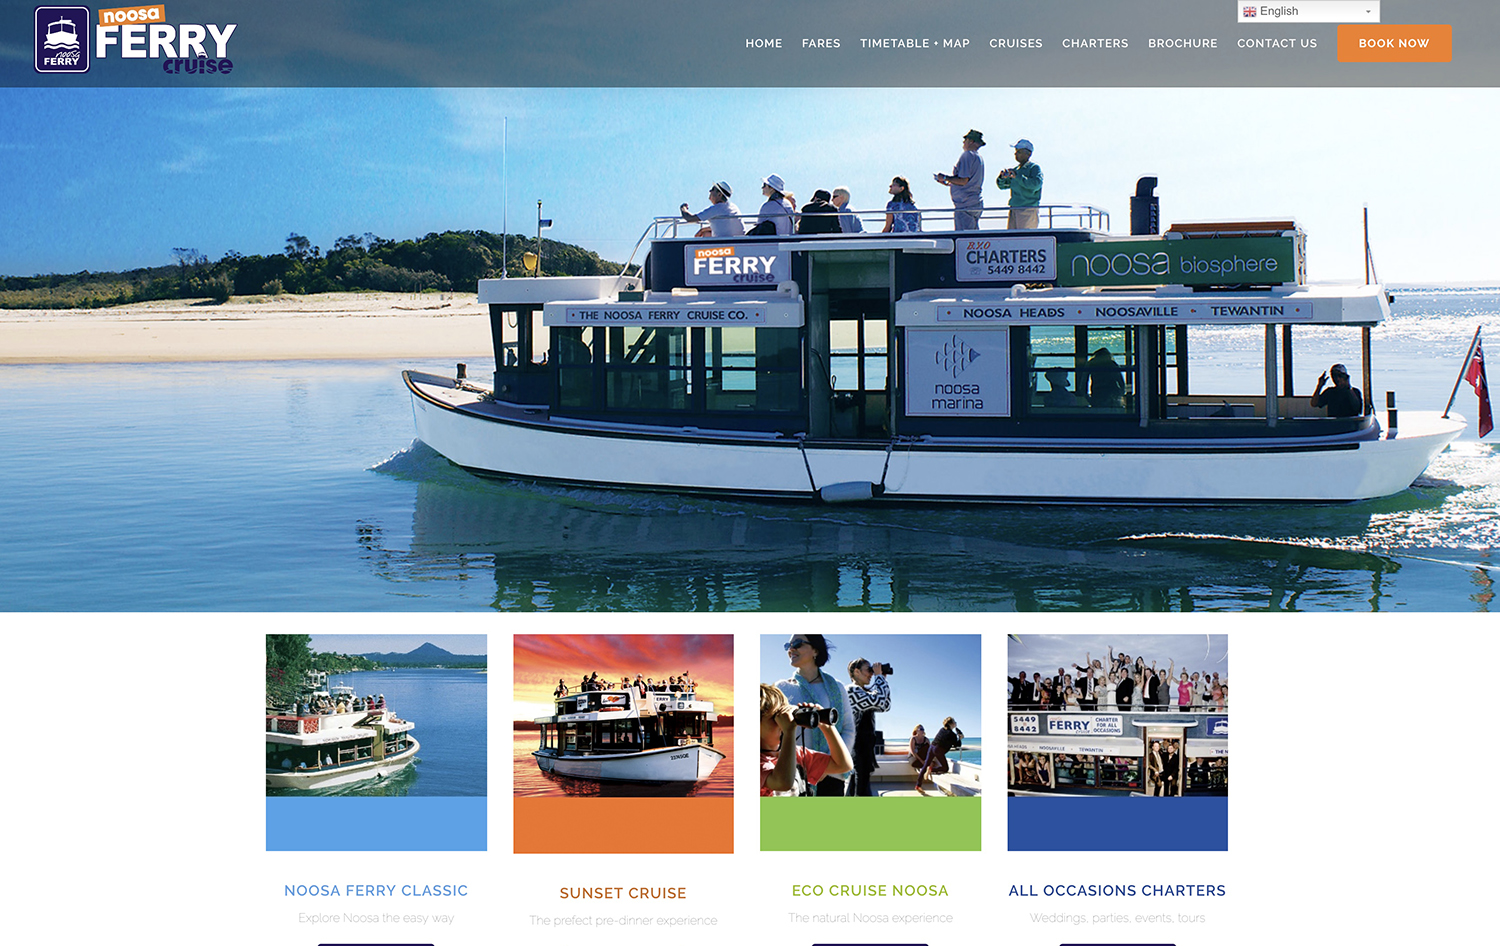 Noosa Ferry - PH: 5449 8442 Email: paul@noosaferry.com